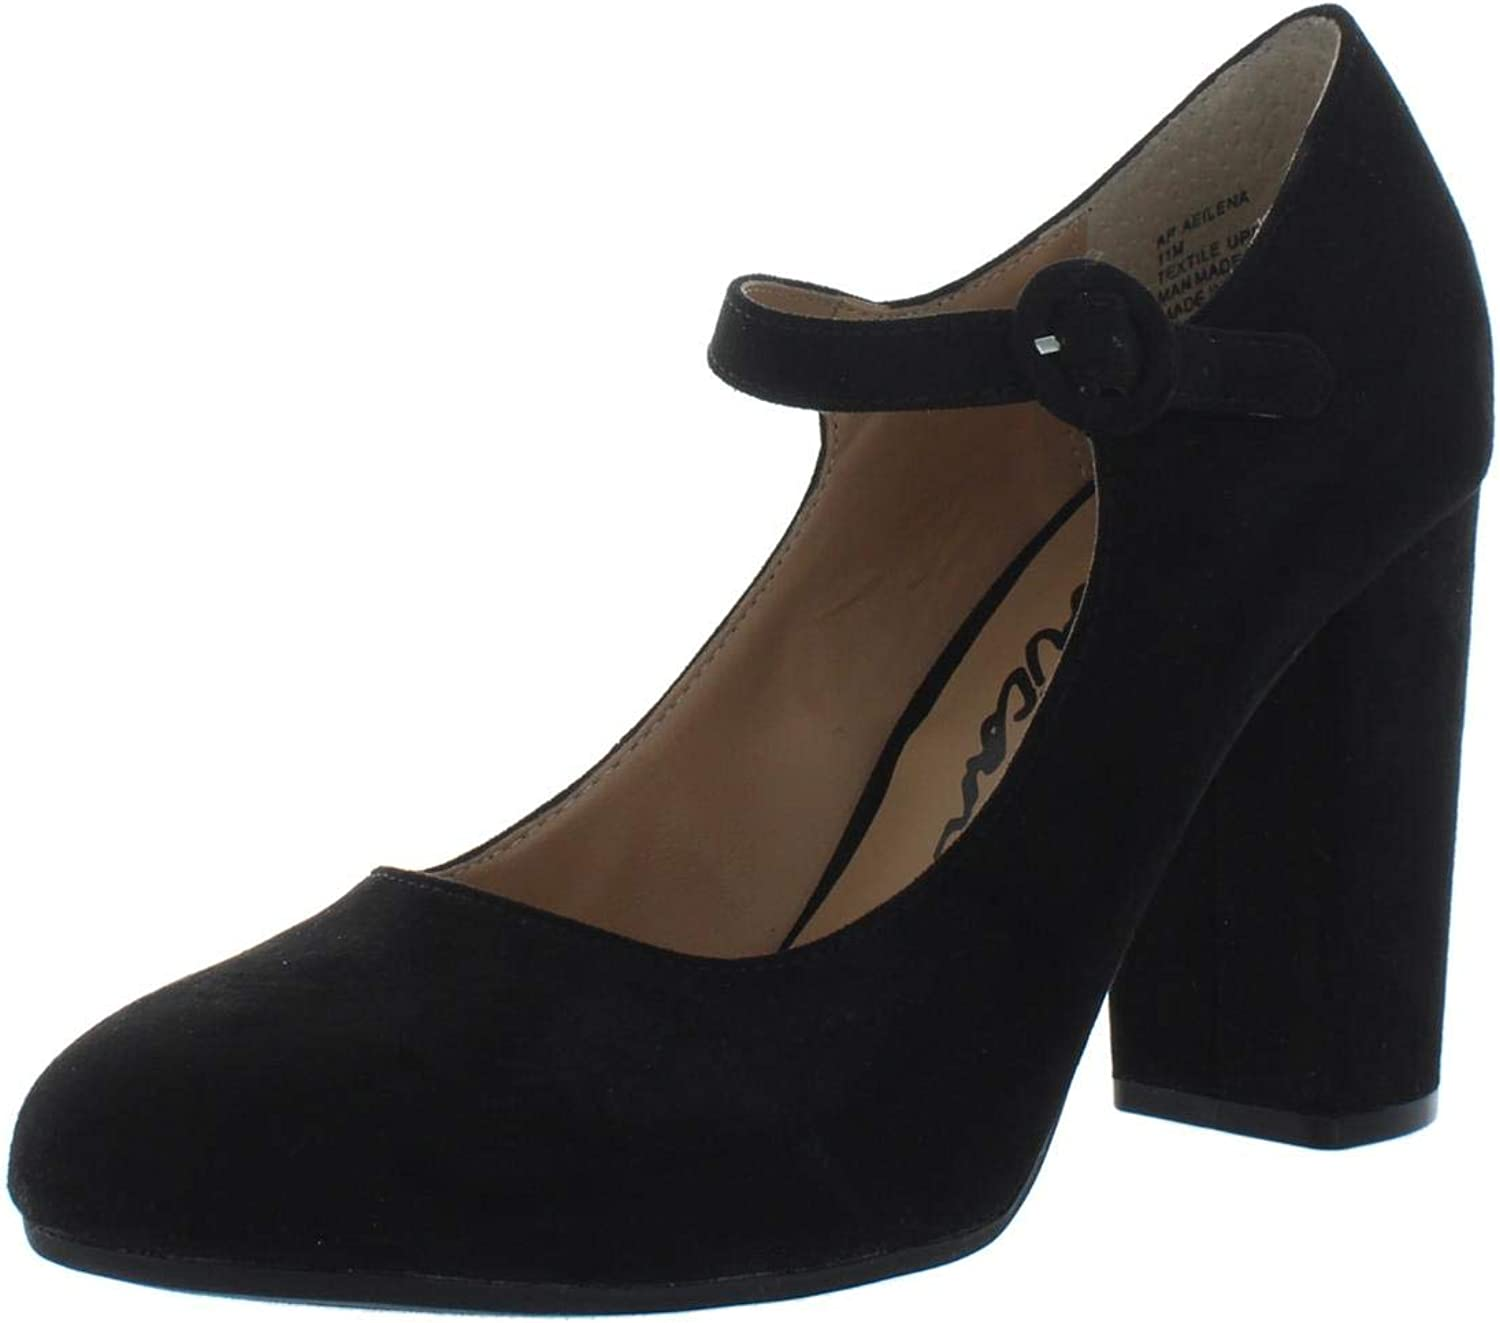 American Rag Womens Eilena Faux Suede Mary Jane Heels Black 11 Medium (B,M)